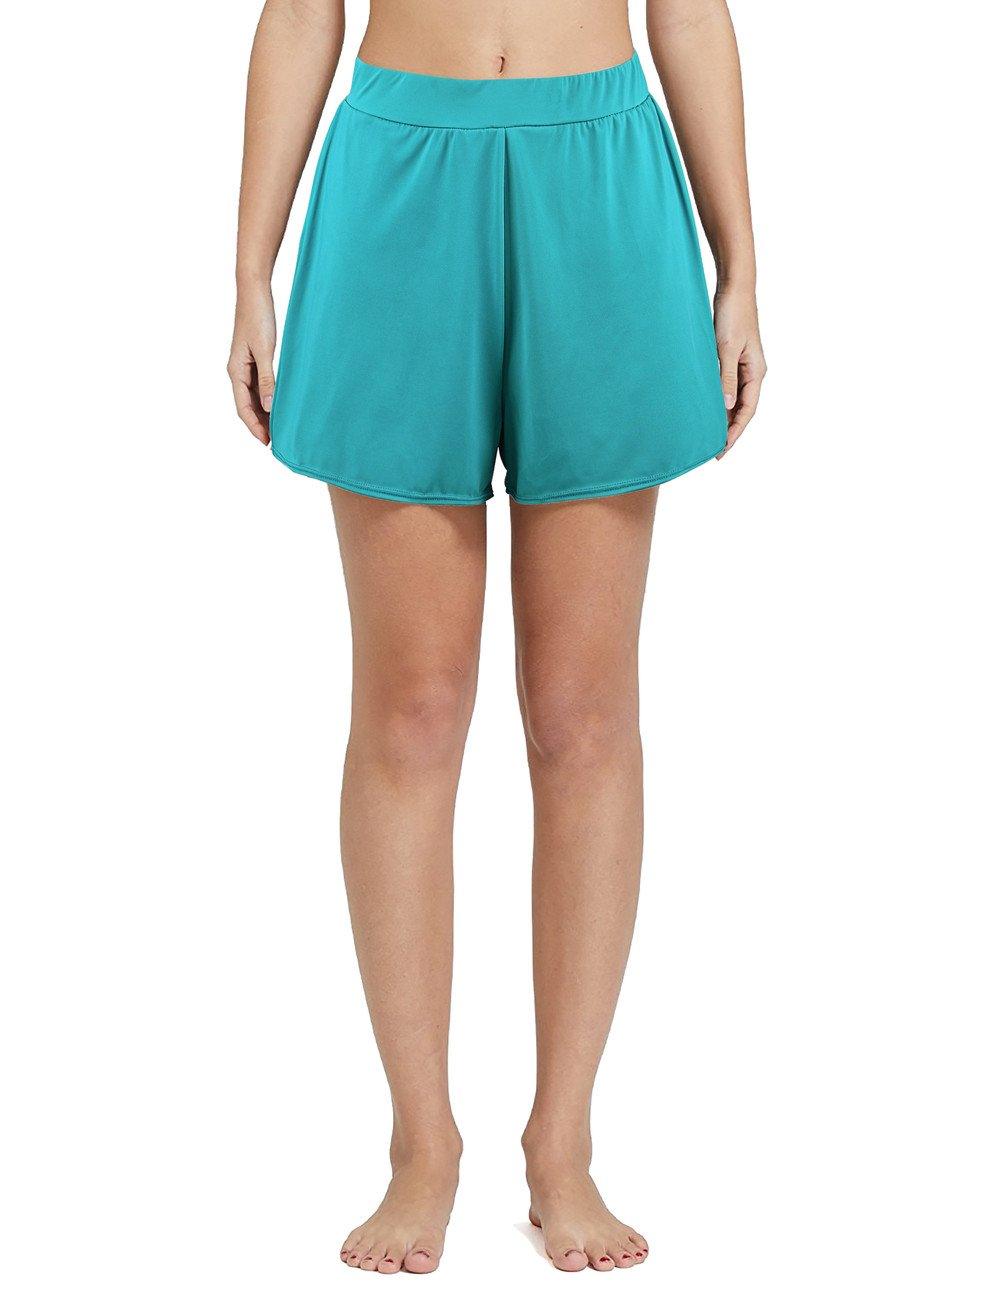 Nonwe Women's Solid A-Line Boyshort Loose Board Shorts Turquoise 18